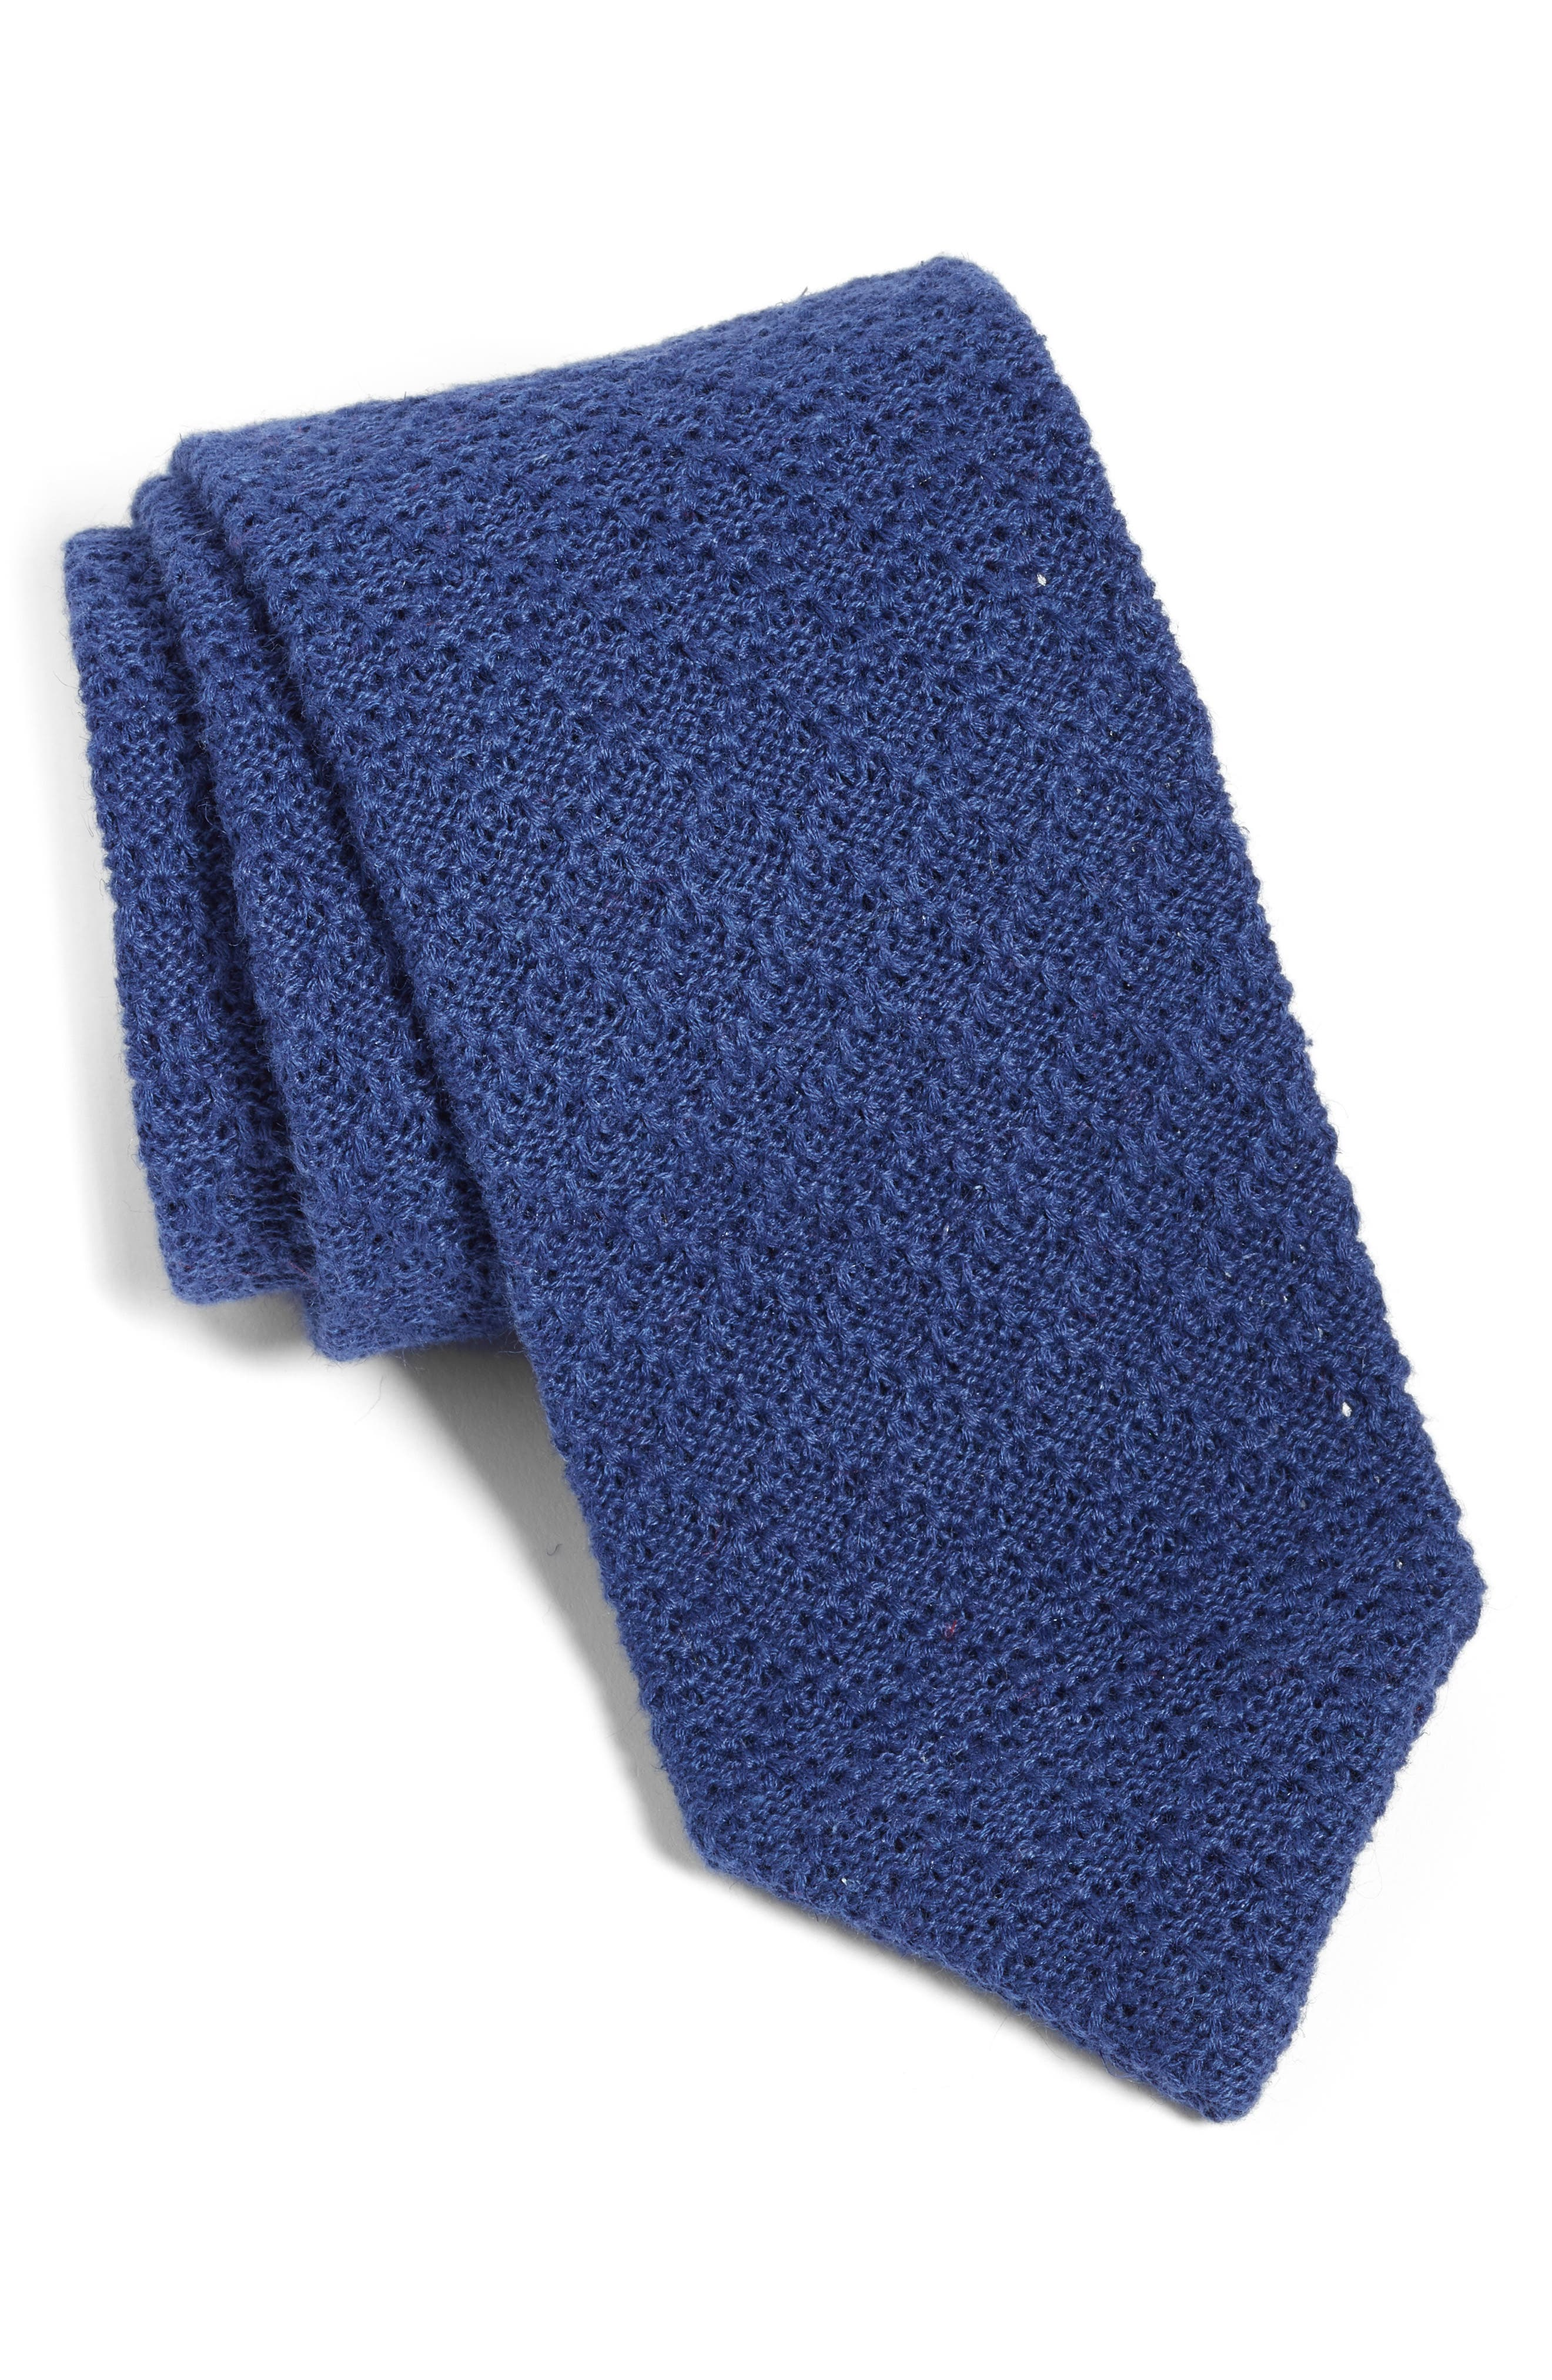 Knit Linen & Cotton Tie,                         Main,                         color, NAVY